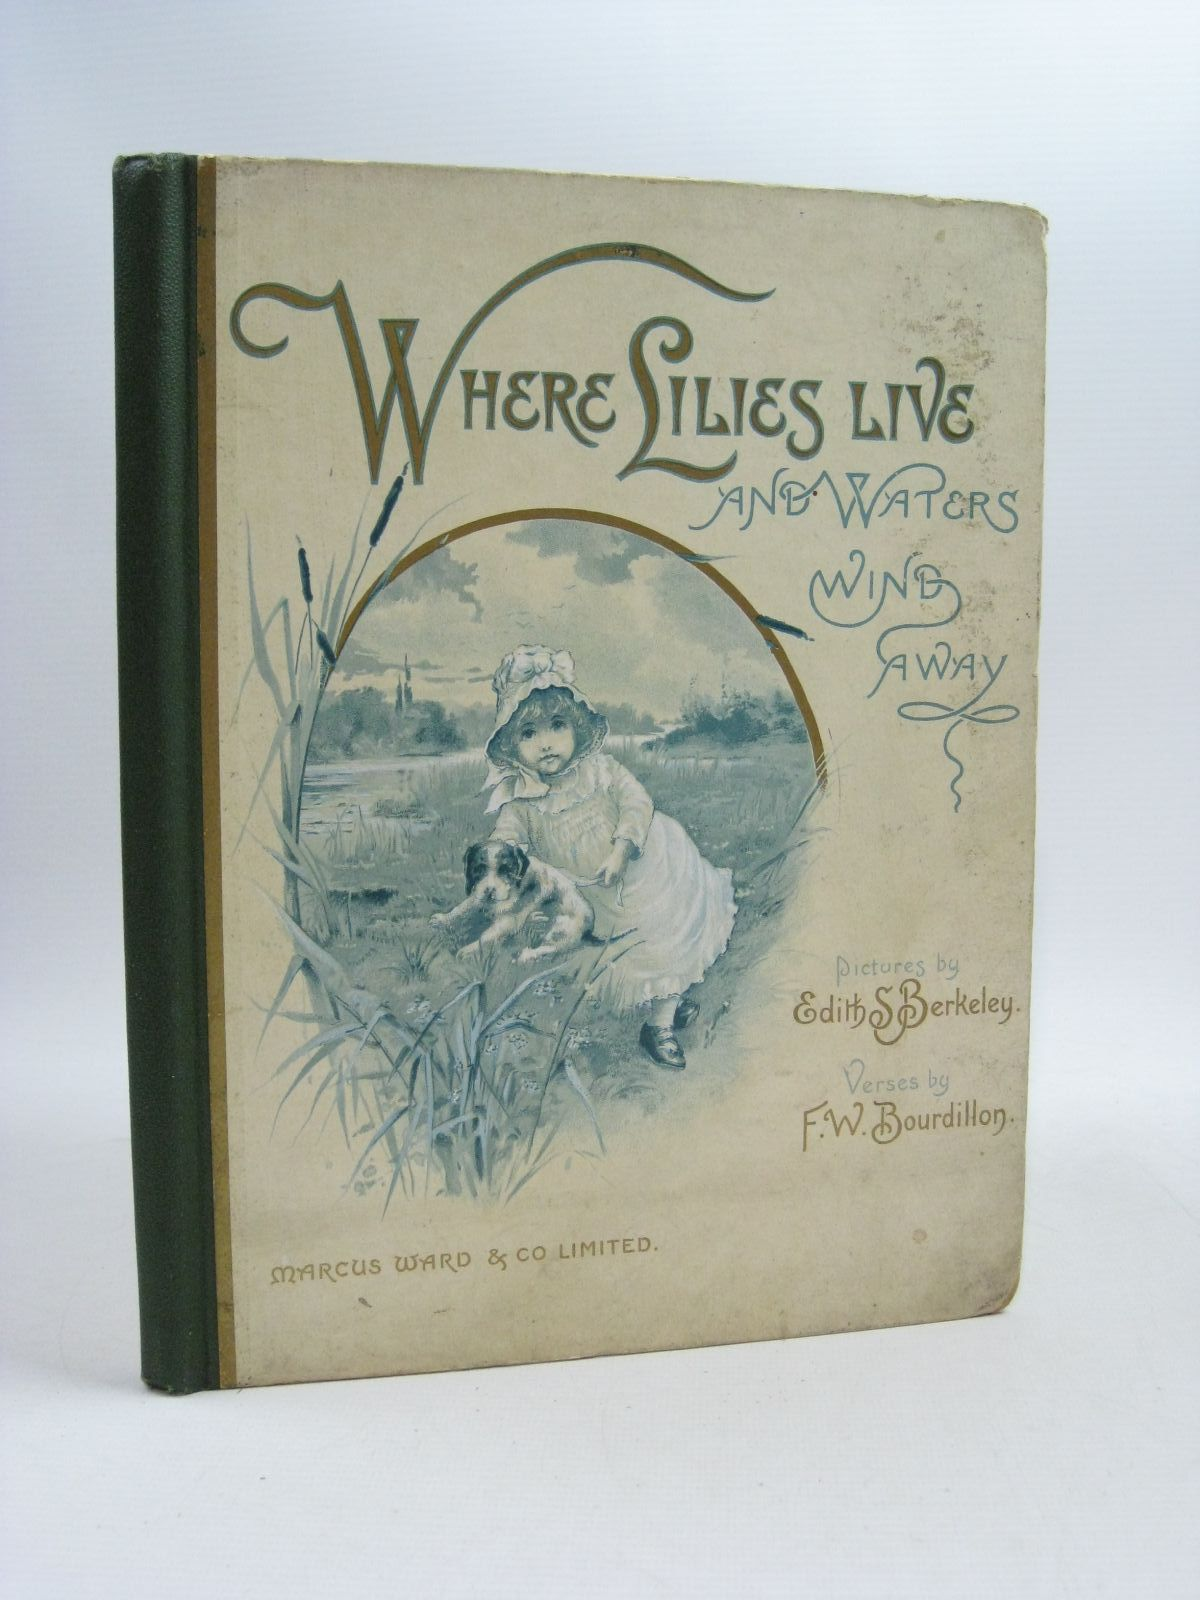 Photo of WHERE LILIES LIVE AND WATERS WIND AWAY written by Bourdillon, F.W. illustrated by Berkeley, Edith Stanley published by Marcus Ward & Co. Limited (STOCK CODE: 1314884)  for sale by Stella & Rose's Books